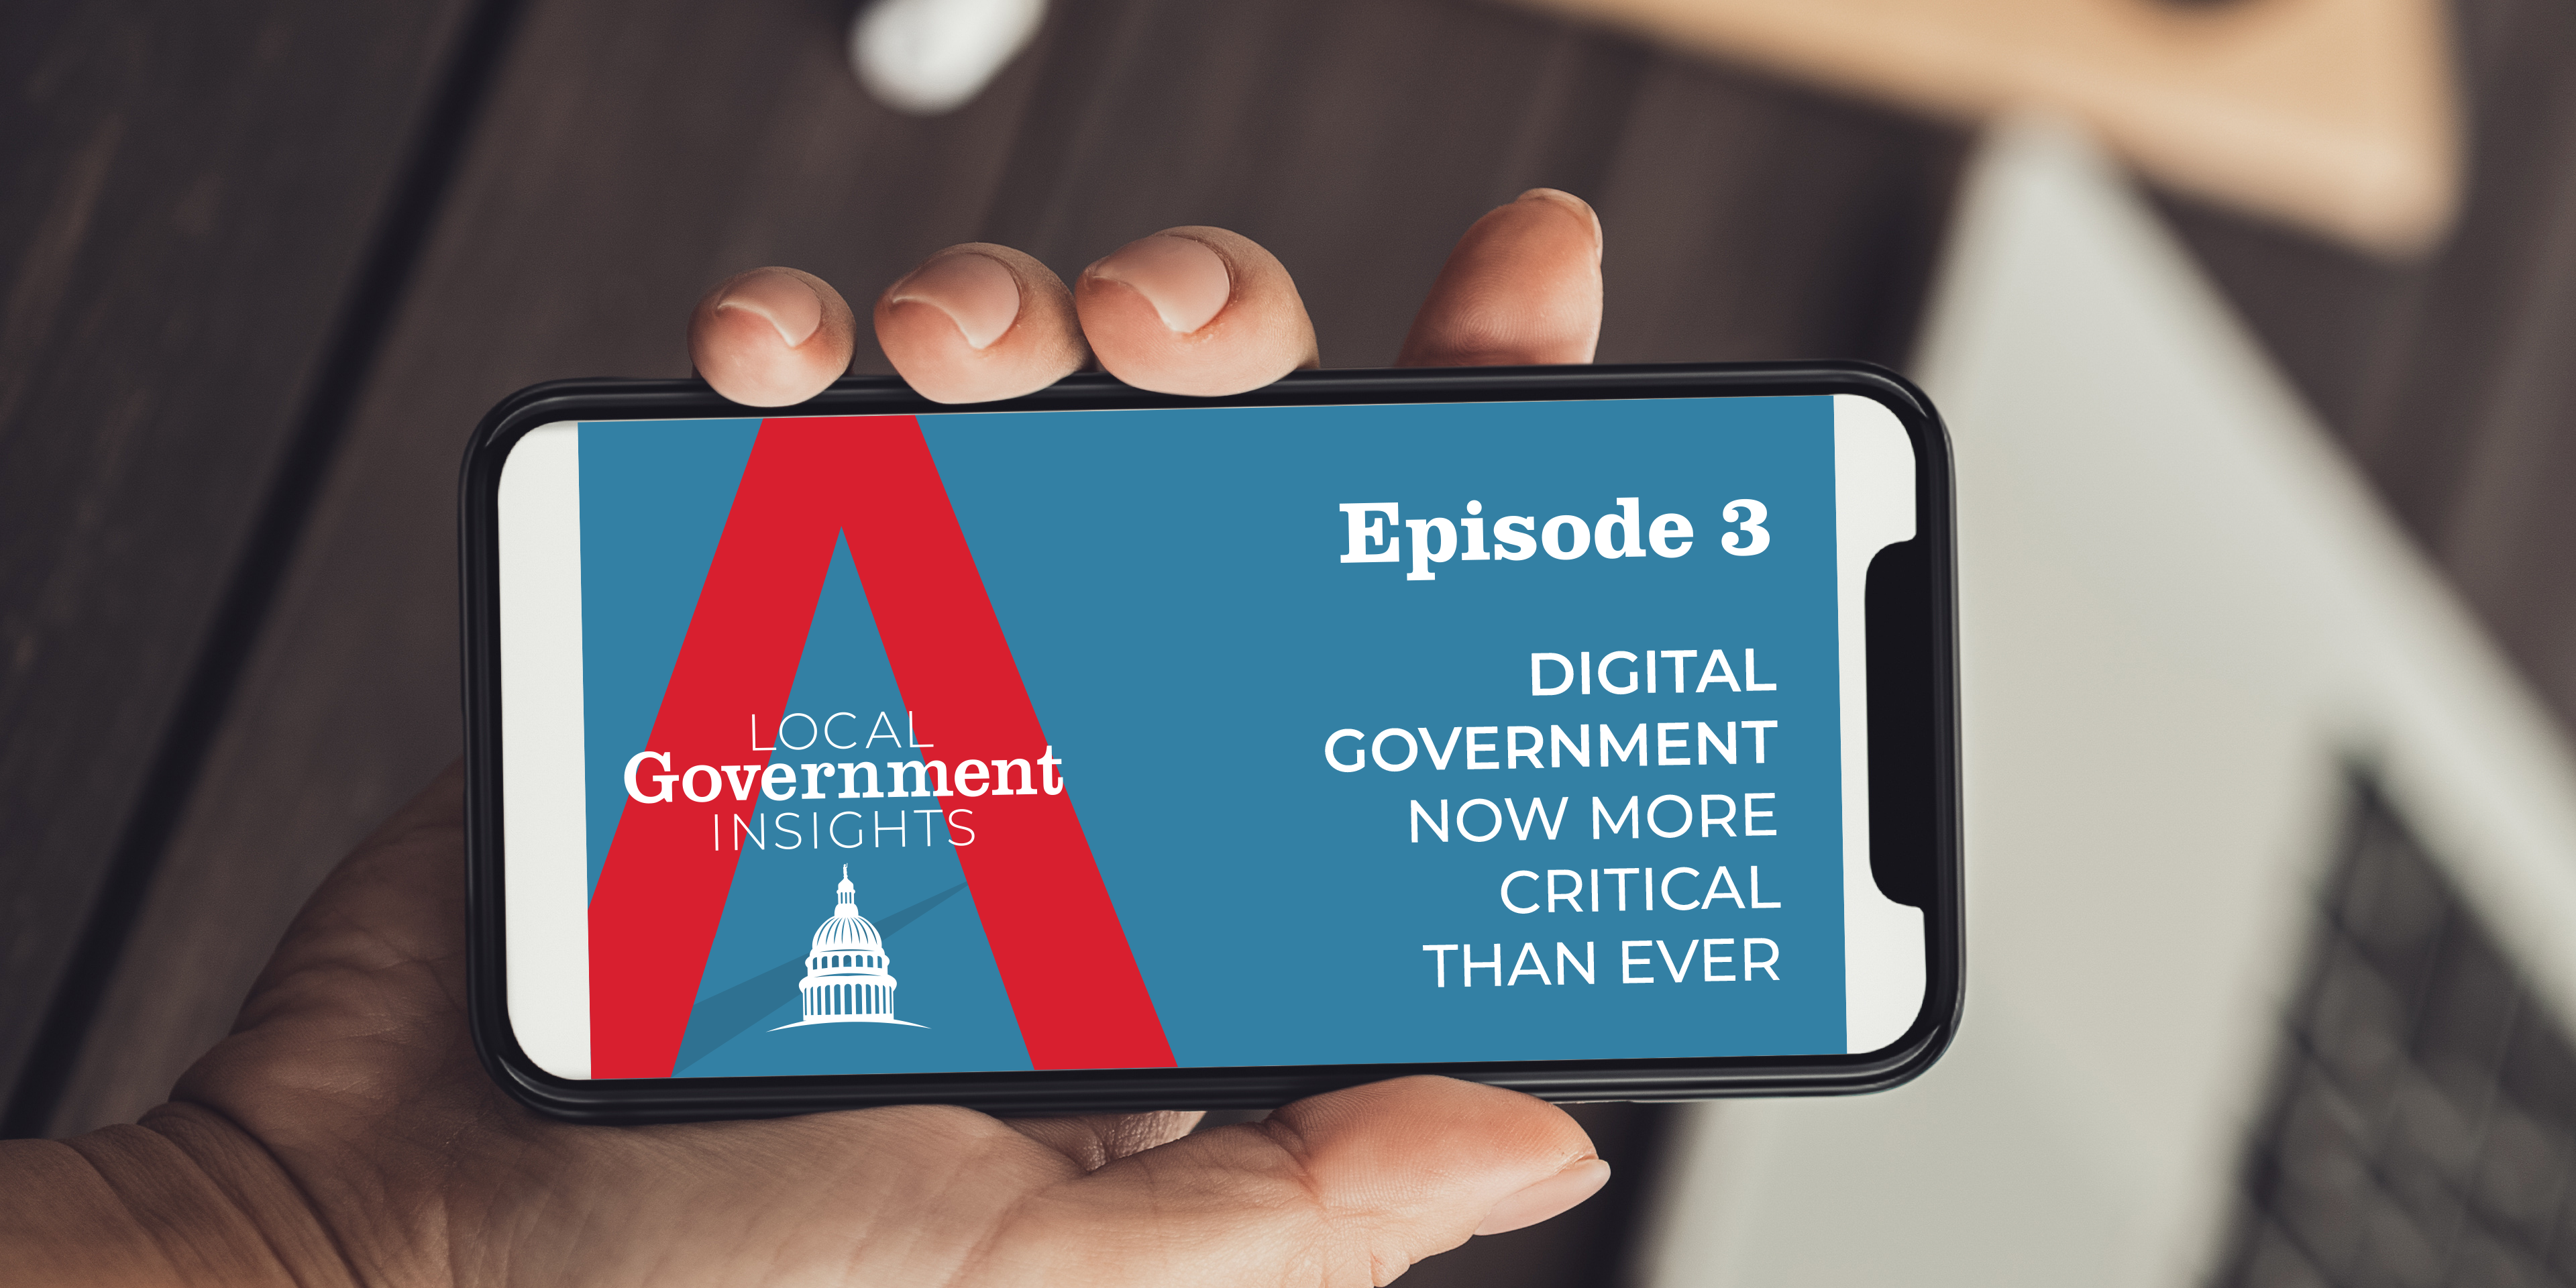 Digital Government: Now More Critical Than Ever